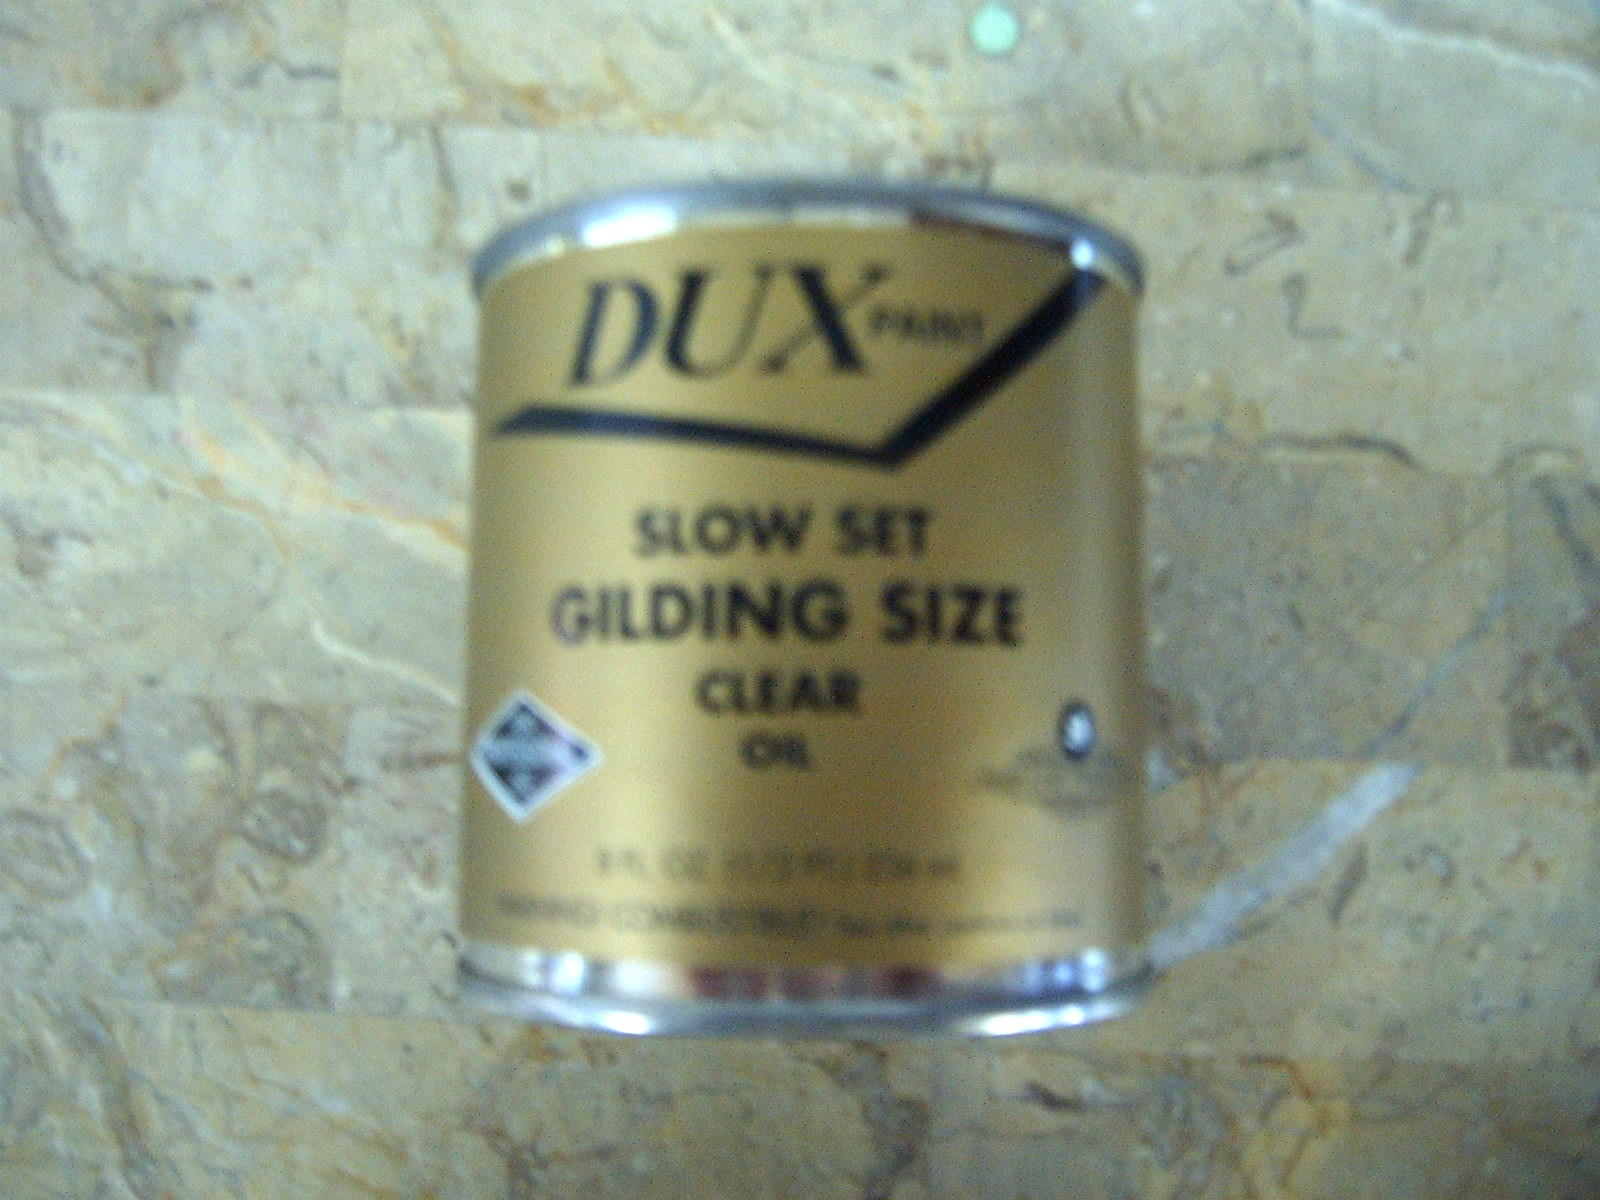 Dux Slow Set Gilding Size